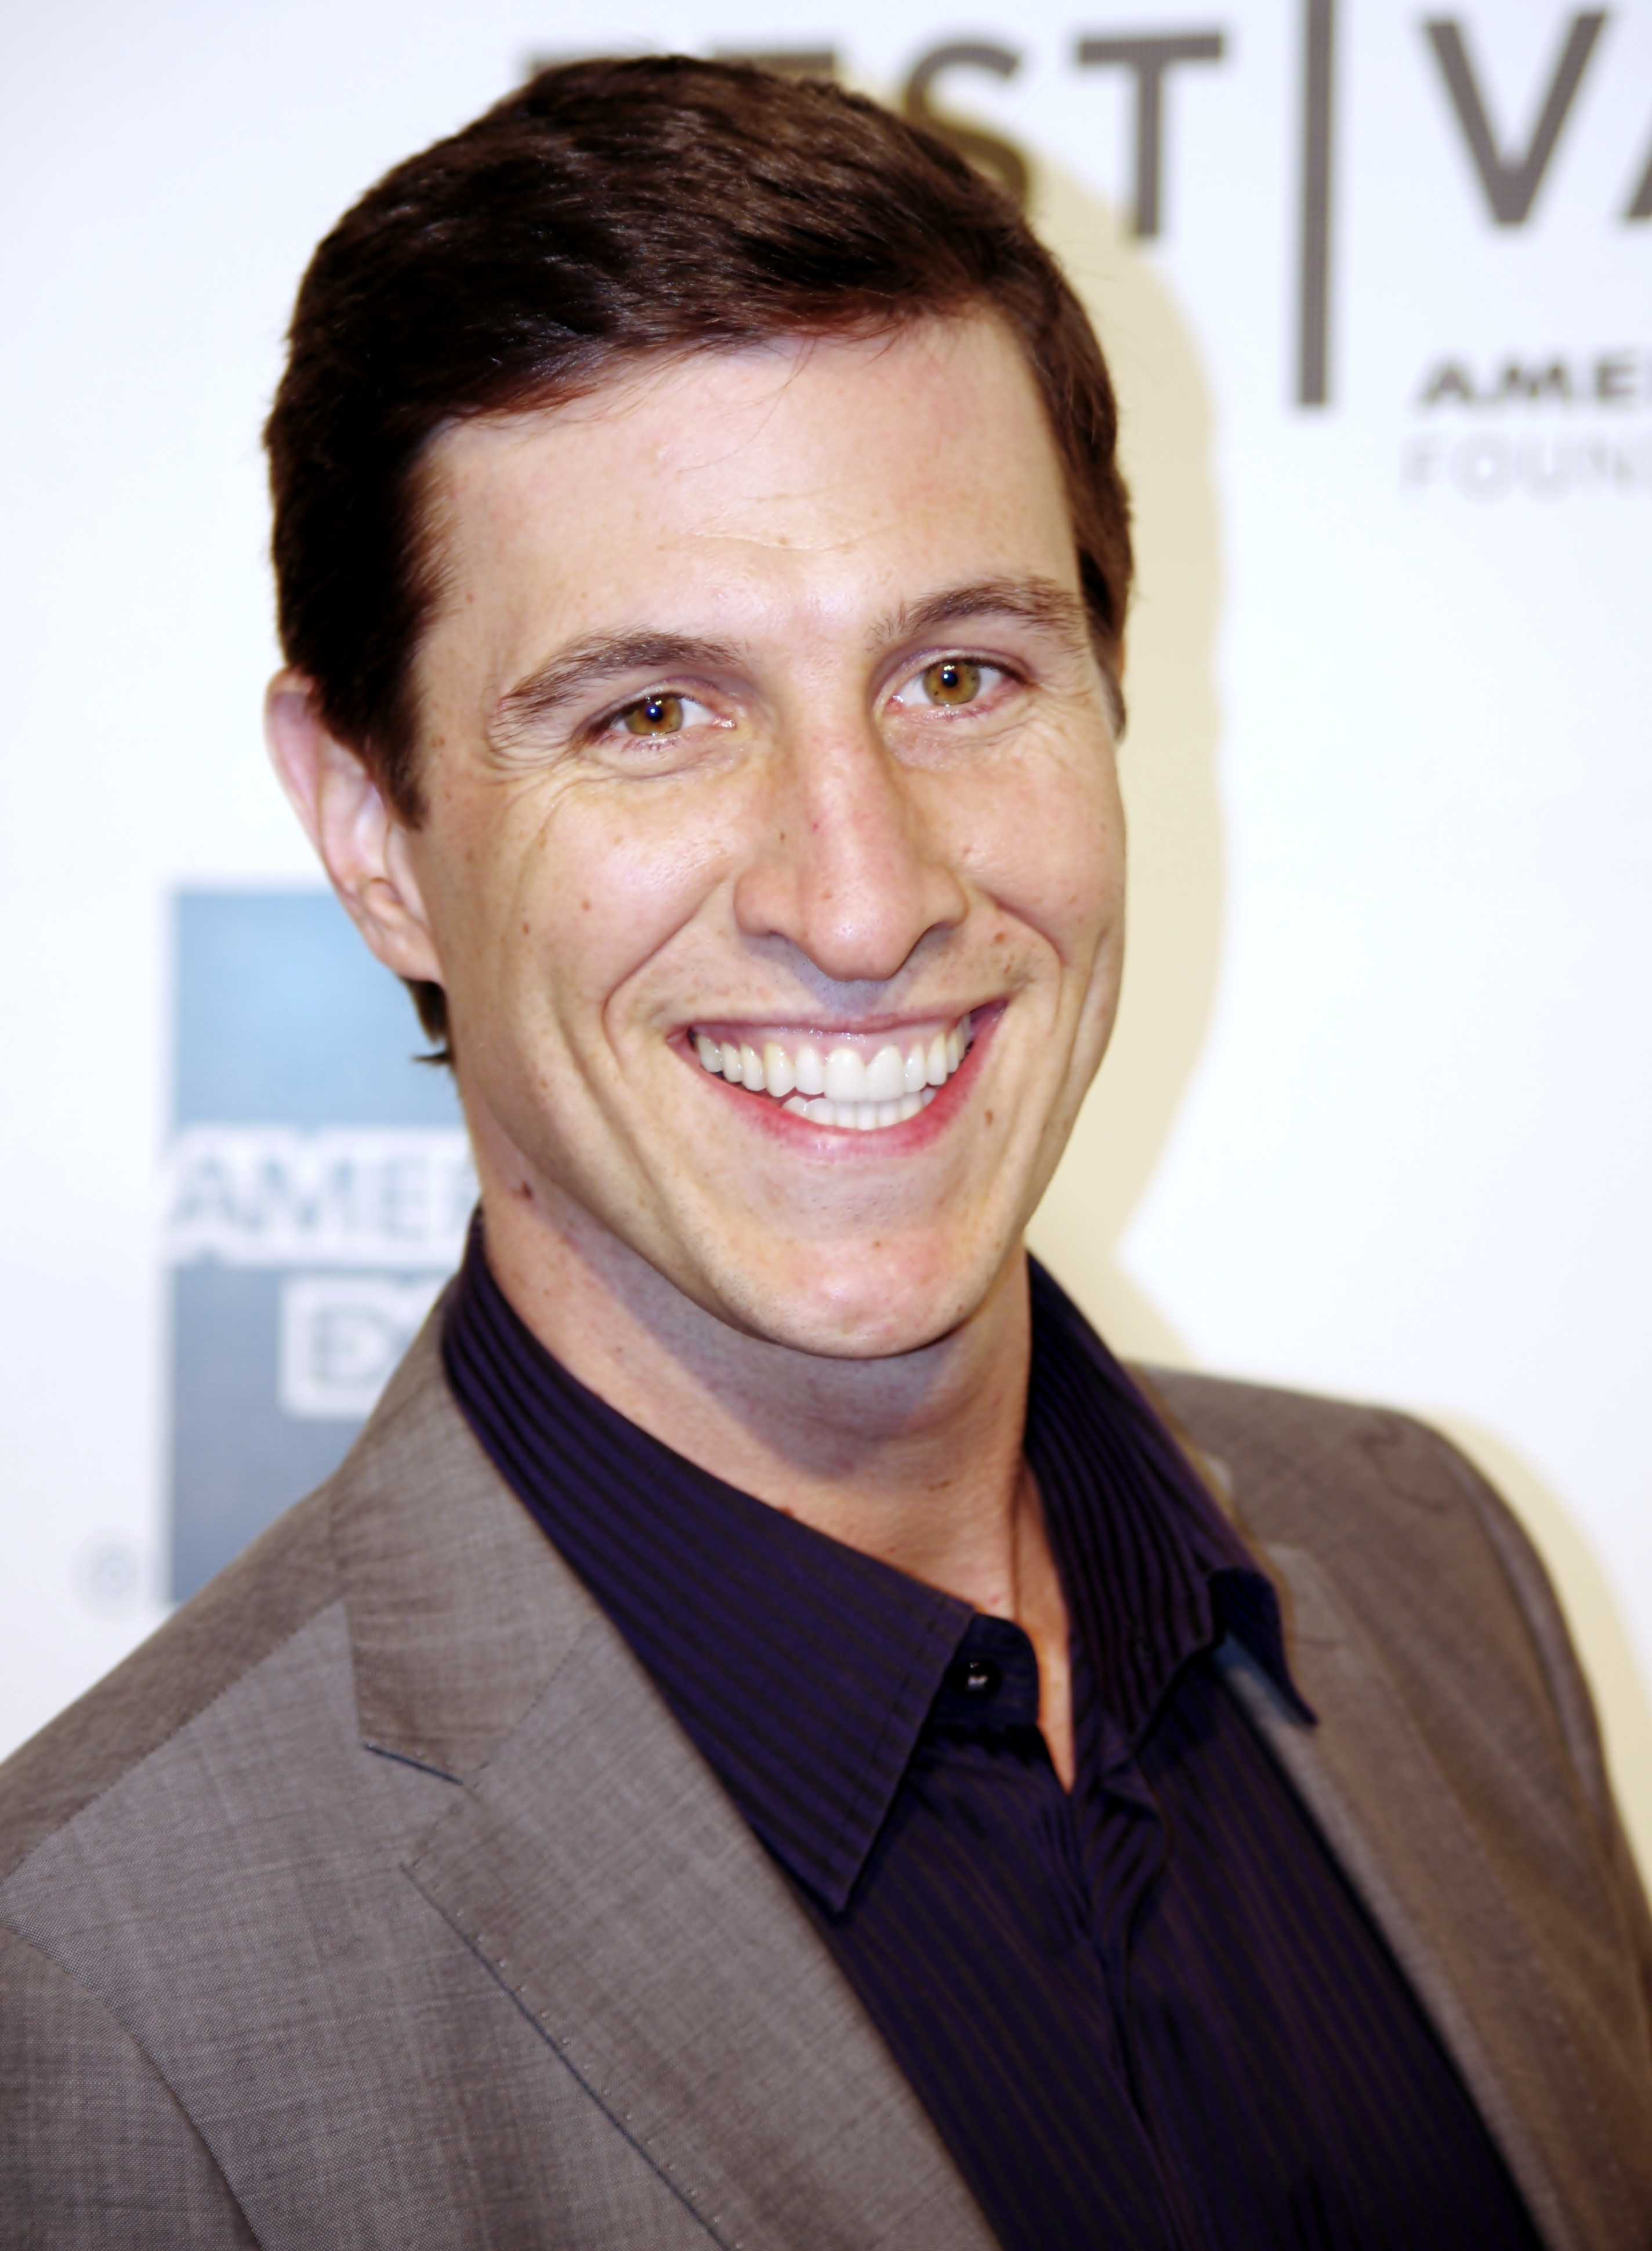 The 40-year old son of father Tell Schreiber and mother Lorraine Reaveley Pablo Schreiber in 2018 photo. Pablo Schreiber earned a  million dollar salary - leaving the net worth at 5 million in 2018